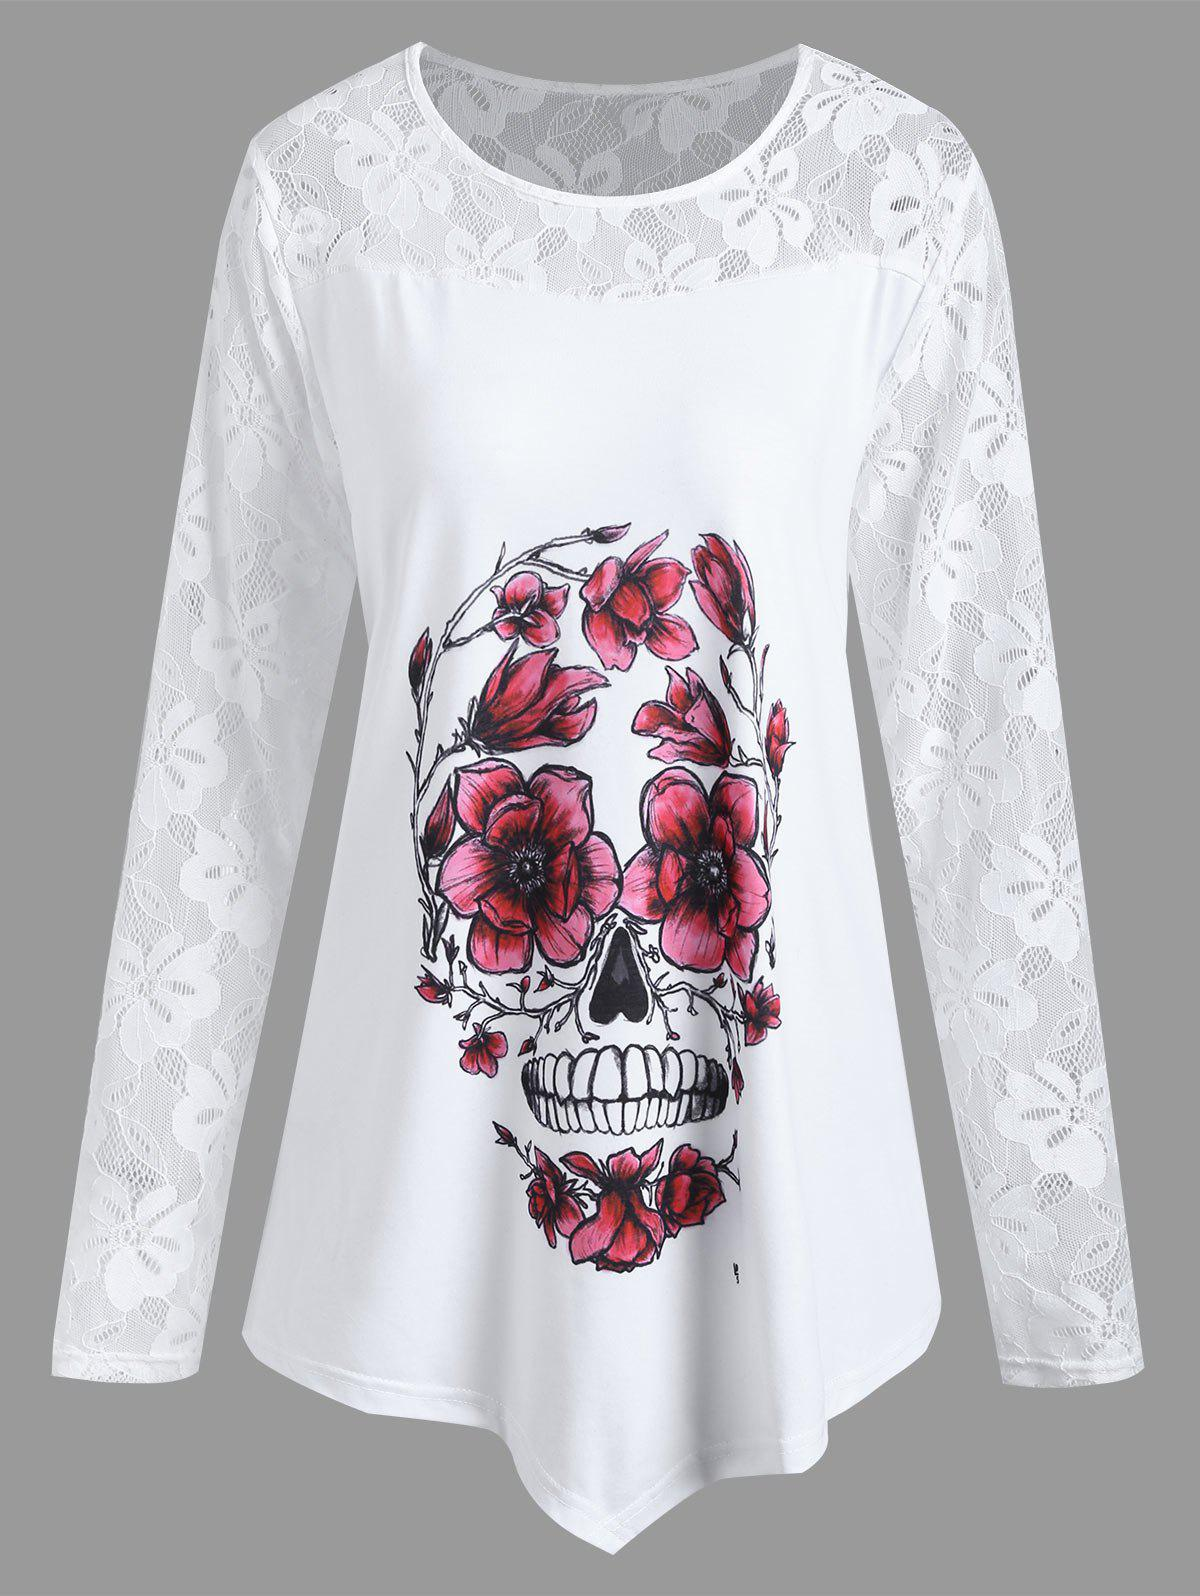 Plus Size Asymmetrical Halloween Floral Skull TeeWOMEN<br><br>Size: XL; Color: WHITE; Material: Cotton,Polyester; Shirt Length: Regular; Sleeve Length: Full; Collar: Round Neck; Style: Casual; Season: Fall; Embellishment: Lace; Pattern Type: Floral,Skulls; Weight: 0.2400kg; Package Contents: 1 x T-shirt;